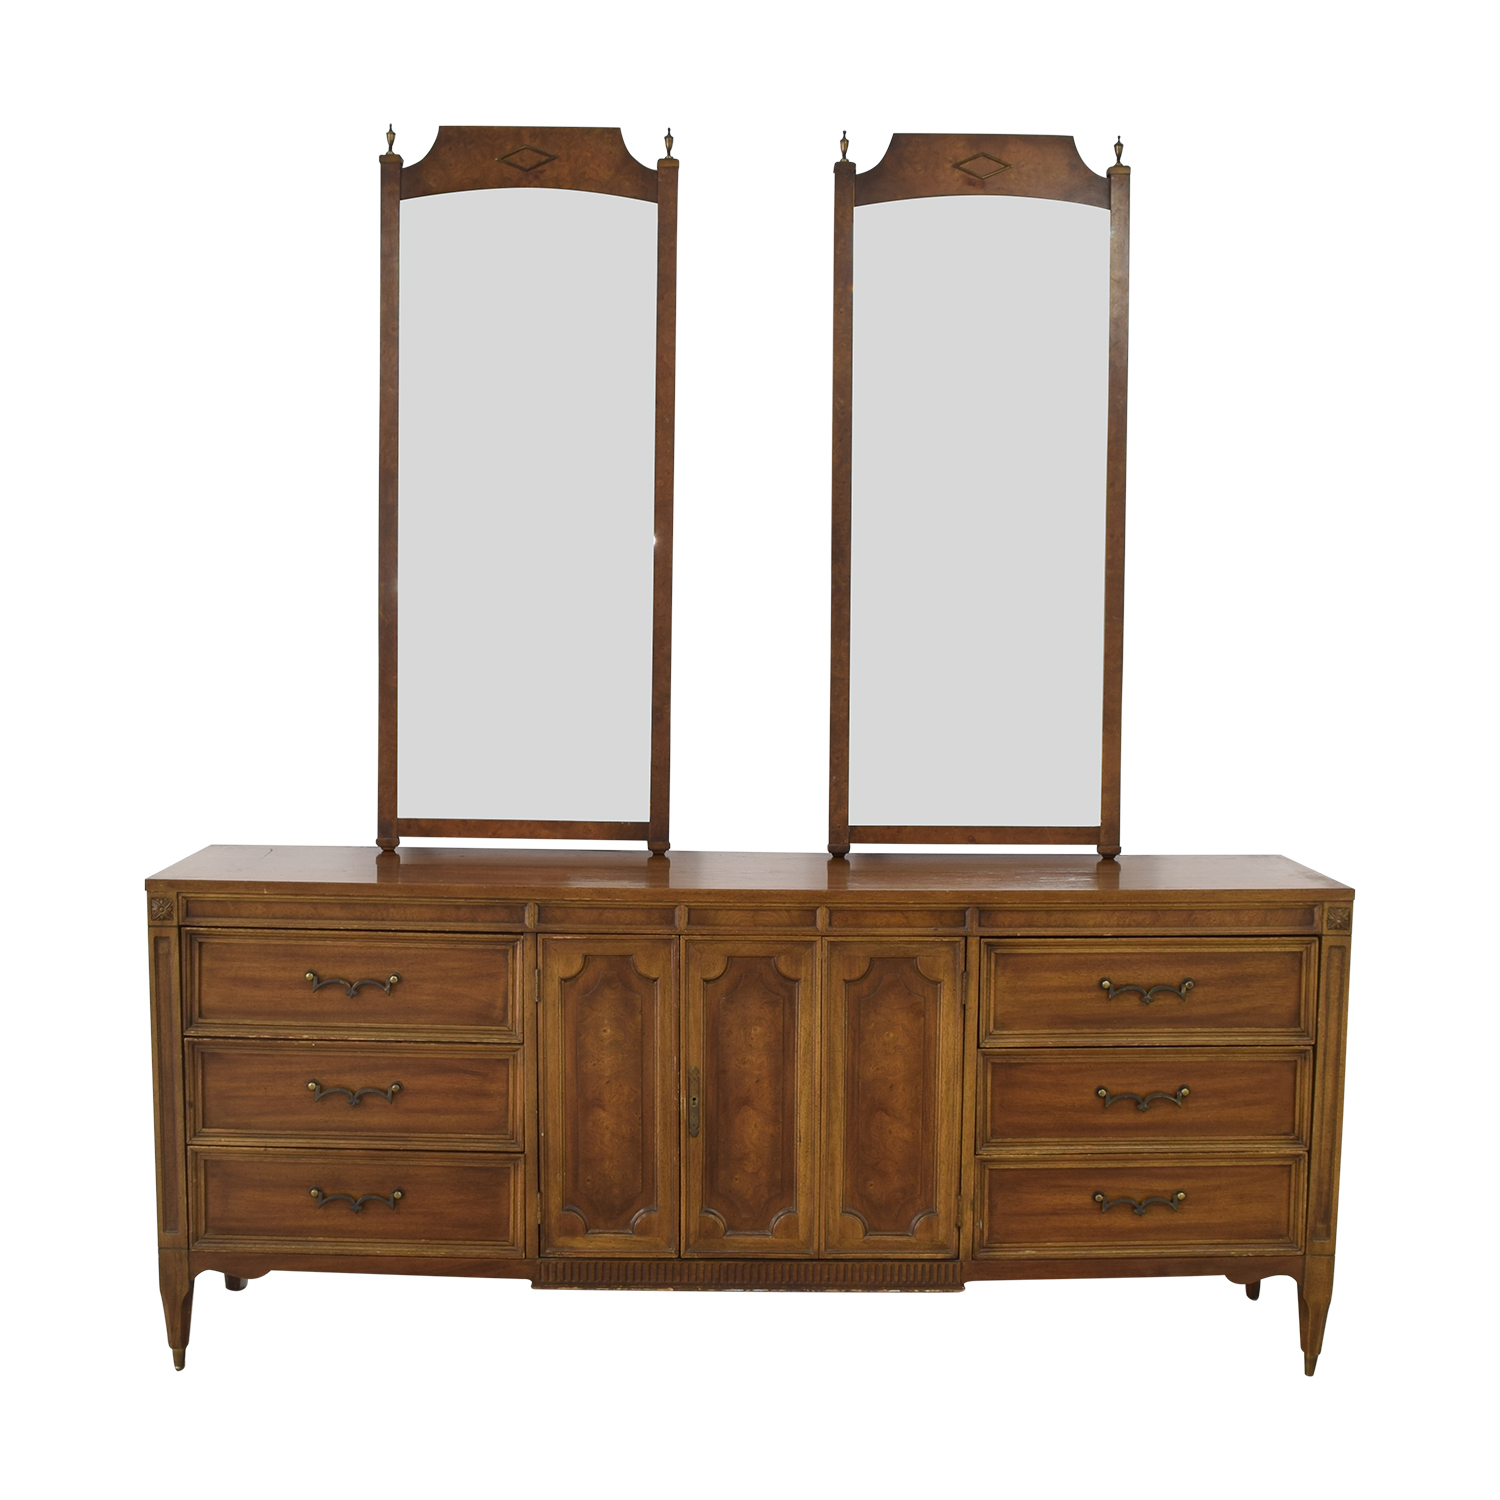 buy American of Martinsville Vintage Dresser with Mirrors American of Martinsville Mirrors